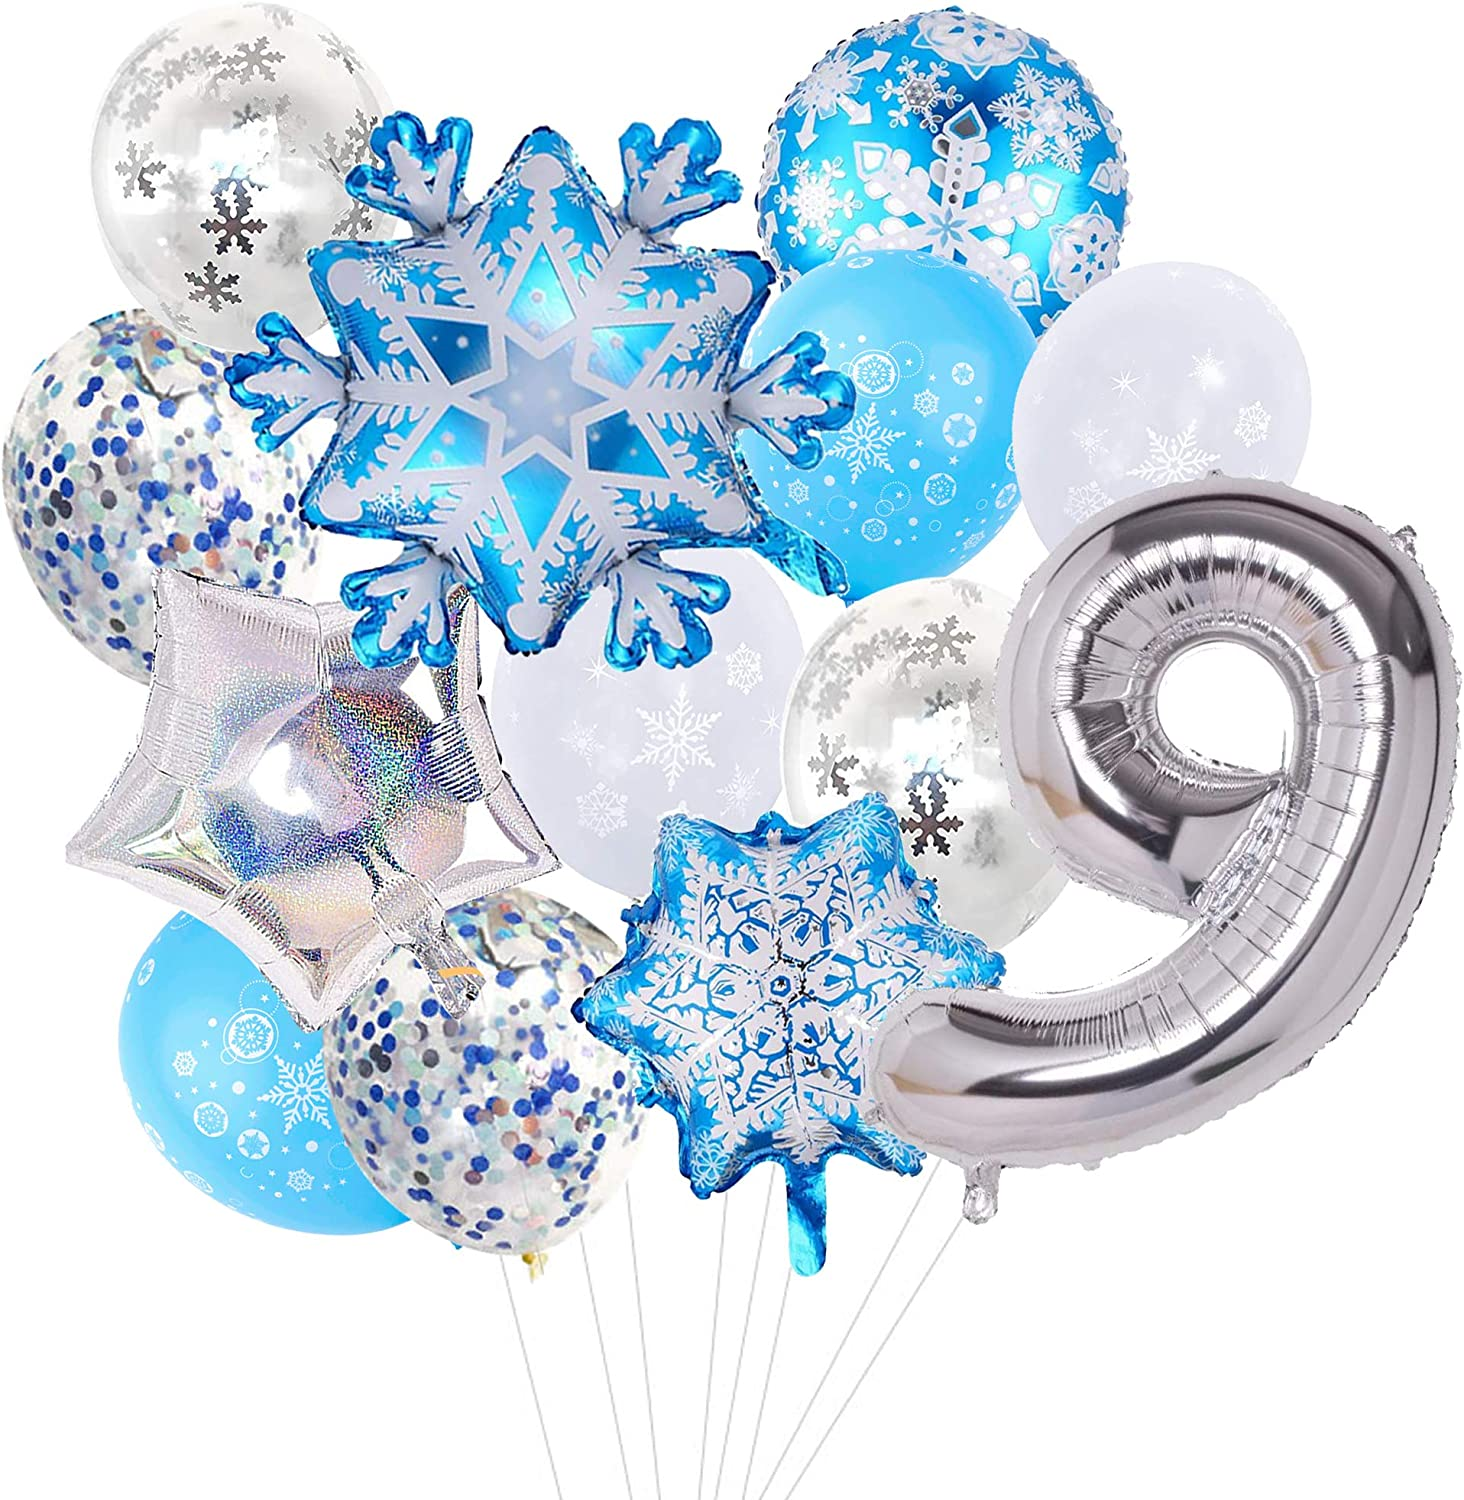 13pcs Snowflake Foil Balloons Frozen Birthday Party Winter Theme Balloons Shining Star Aluminum Balloons for Baby Shower Kids Birthday Winter Home and Party Decoration Supplies Silver 7